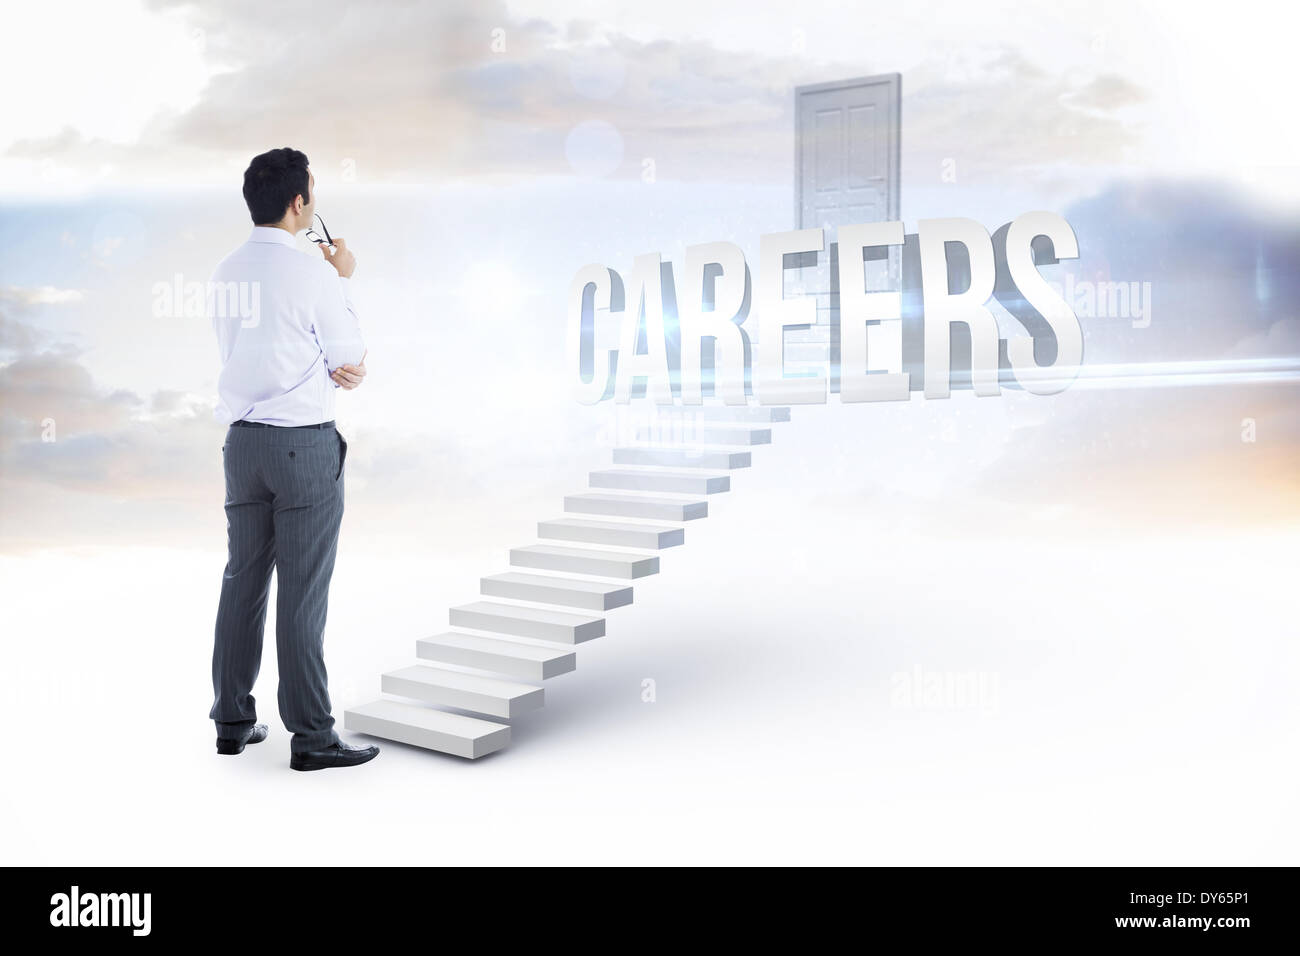 Careers against white steps leading to closed door - Stock Image